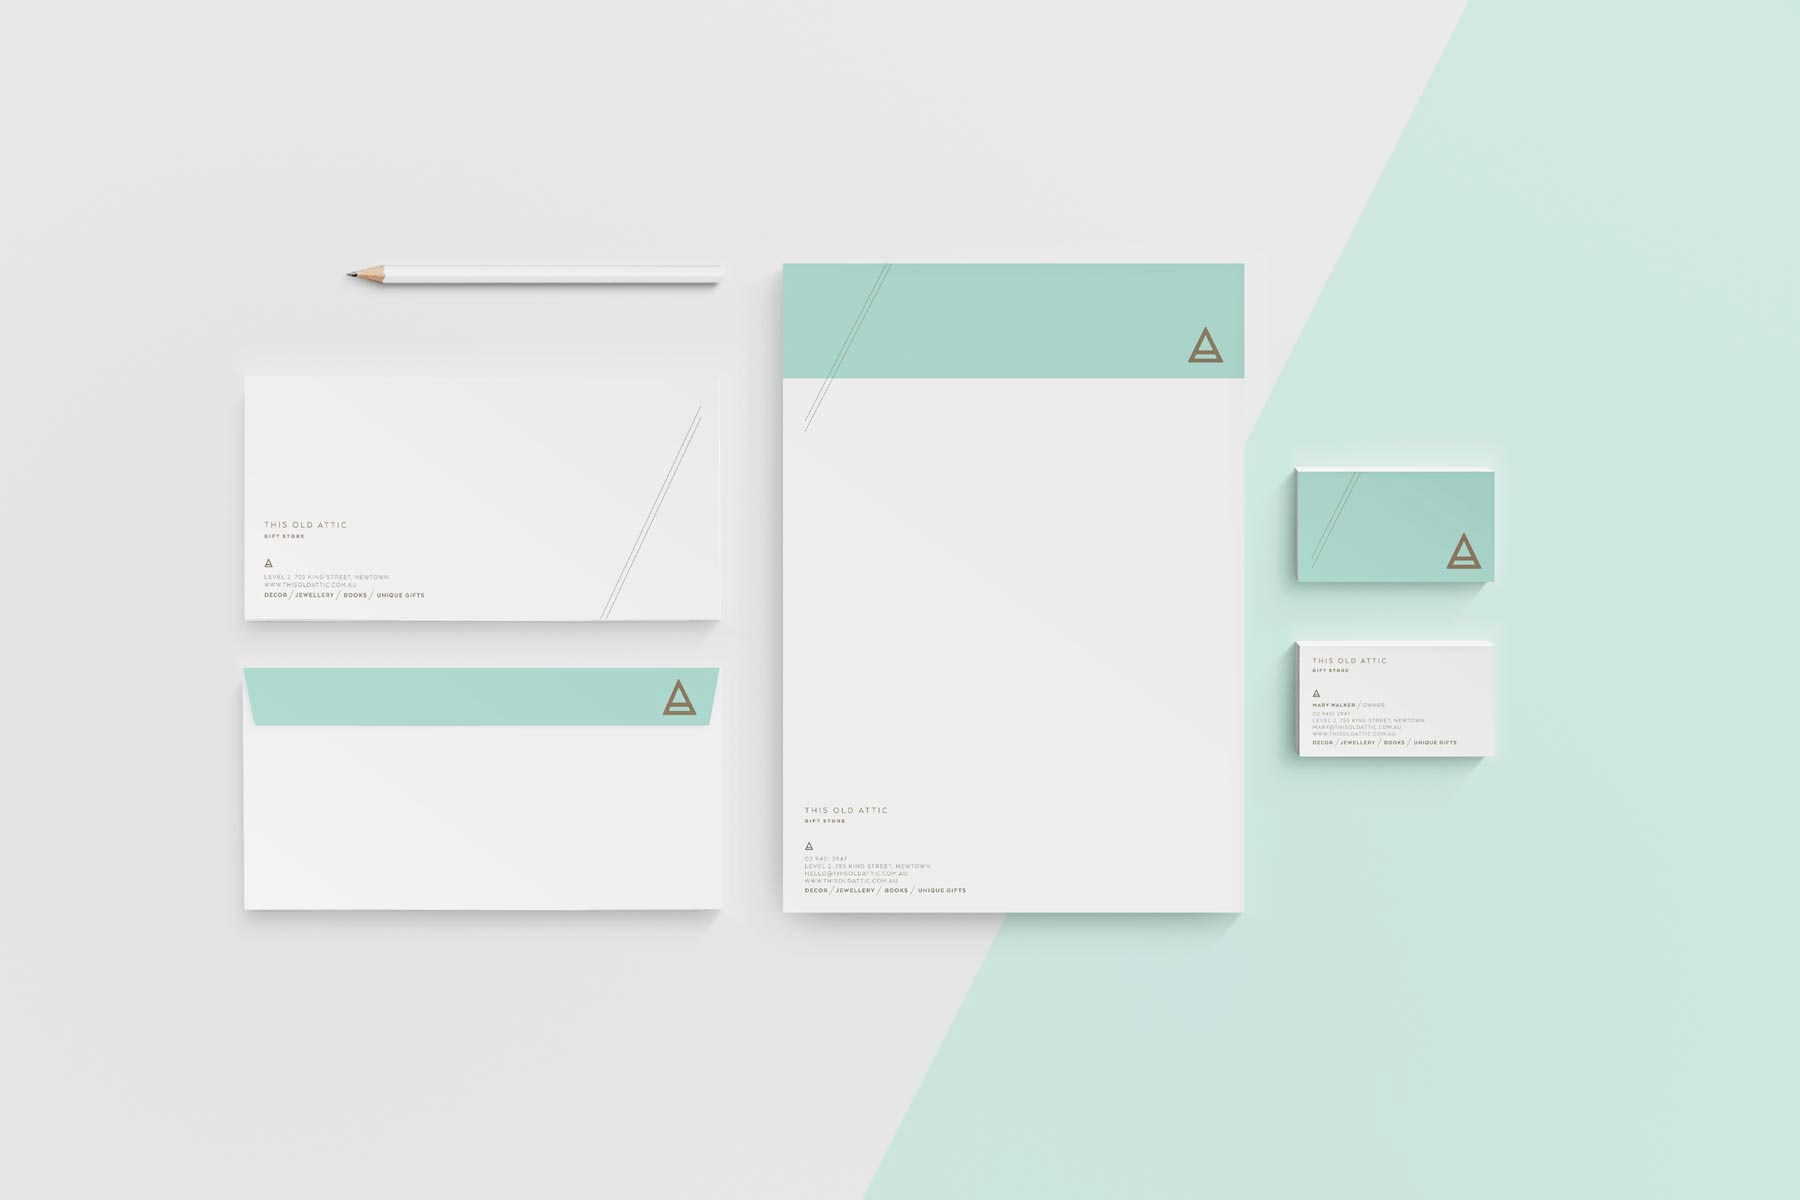 This Old Attic stationery design, by Lisa Furze